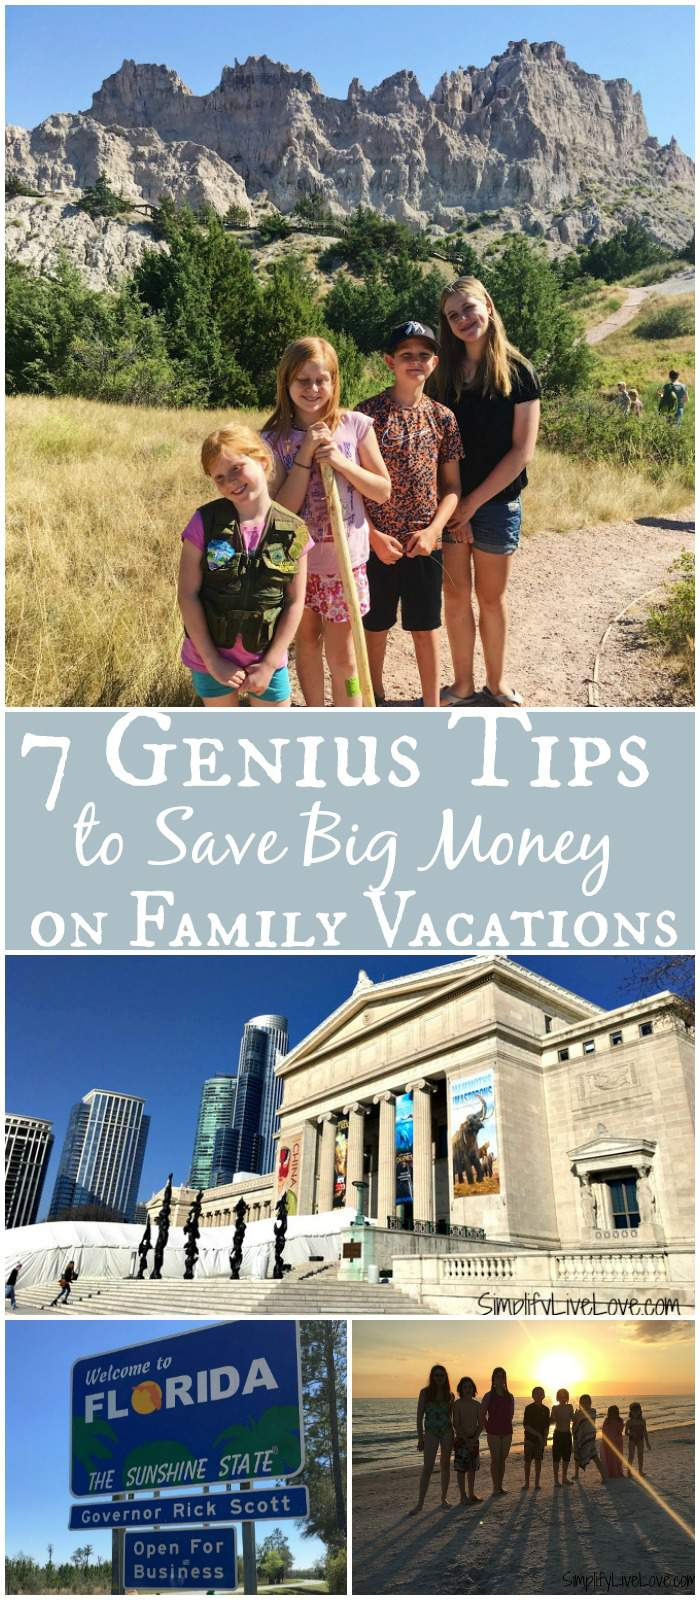 Want to travel but afraid of the cost? These 7 genius tips will help you save big money on family vacations so you can travel more on less money! #familytravel #travel #moneysavingtips